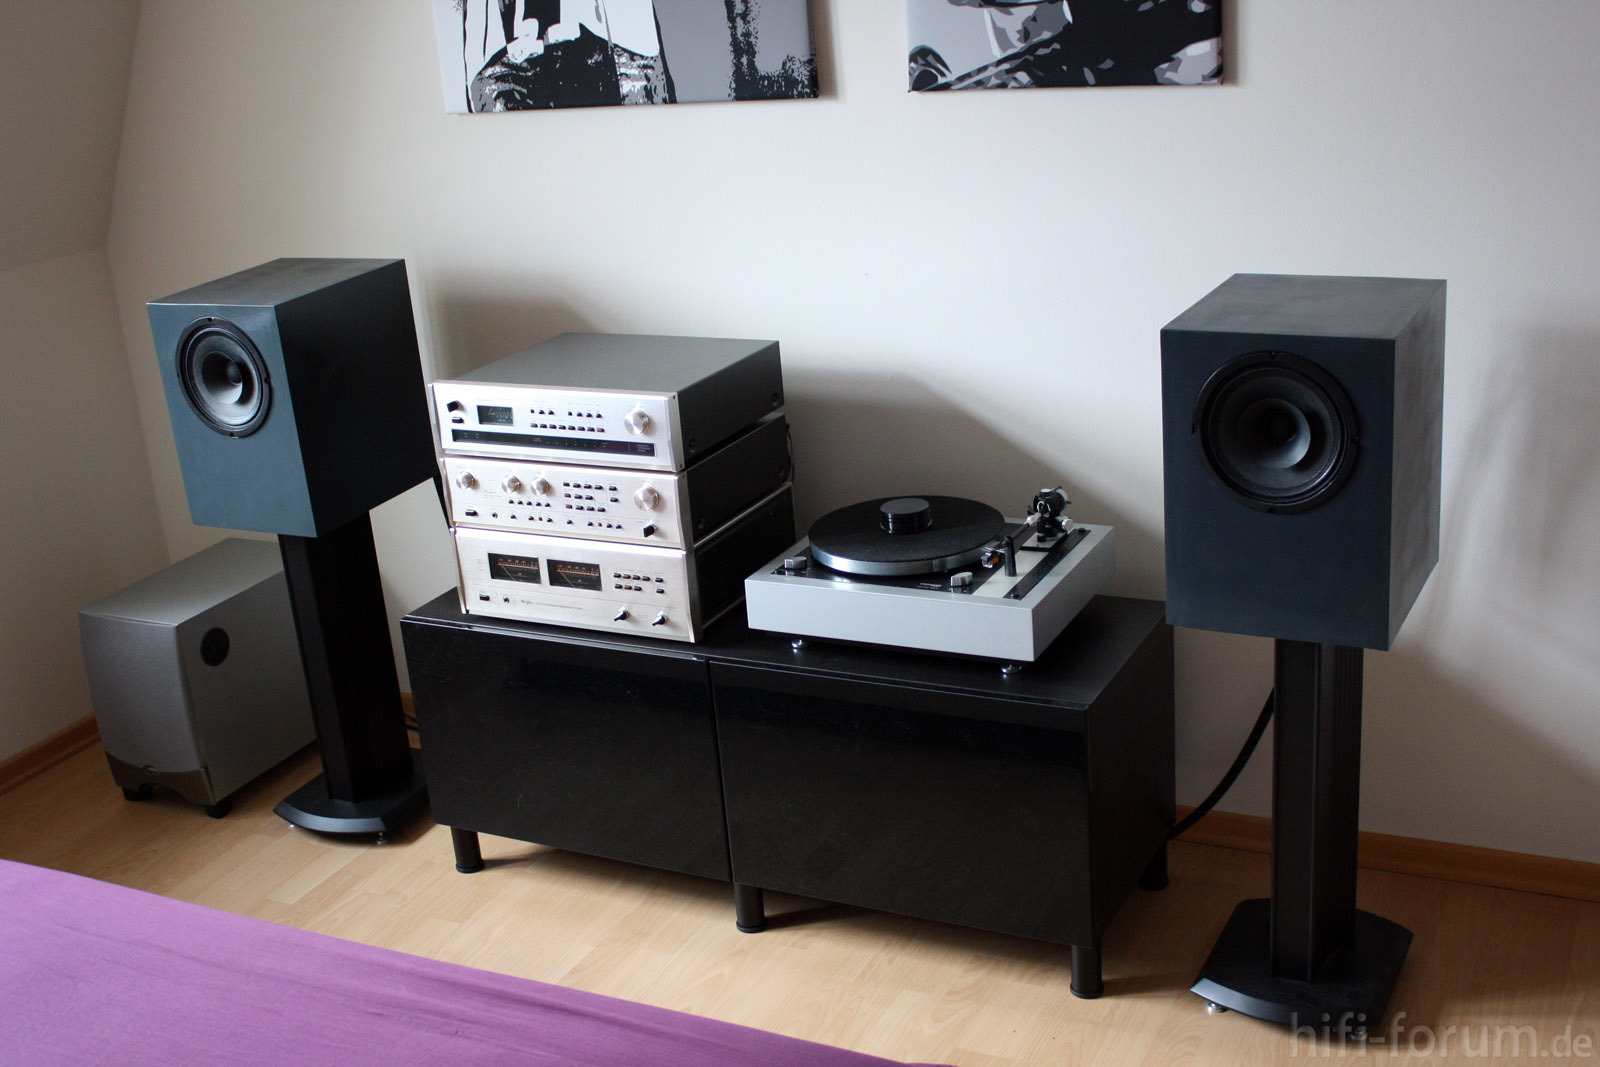 12 hifiklassiker stereo hifi bildergalerie. Black Bedroom Furniture Sets. Home Design Ideas